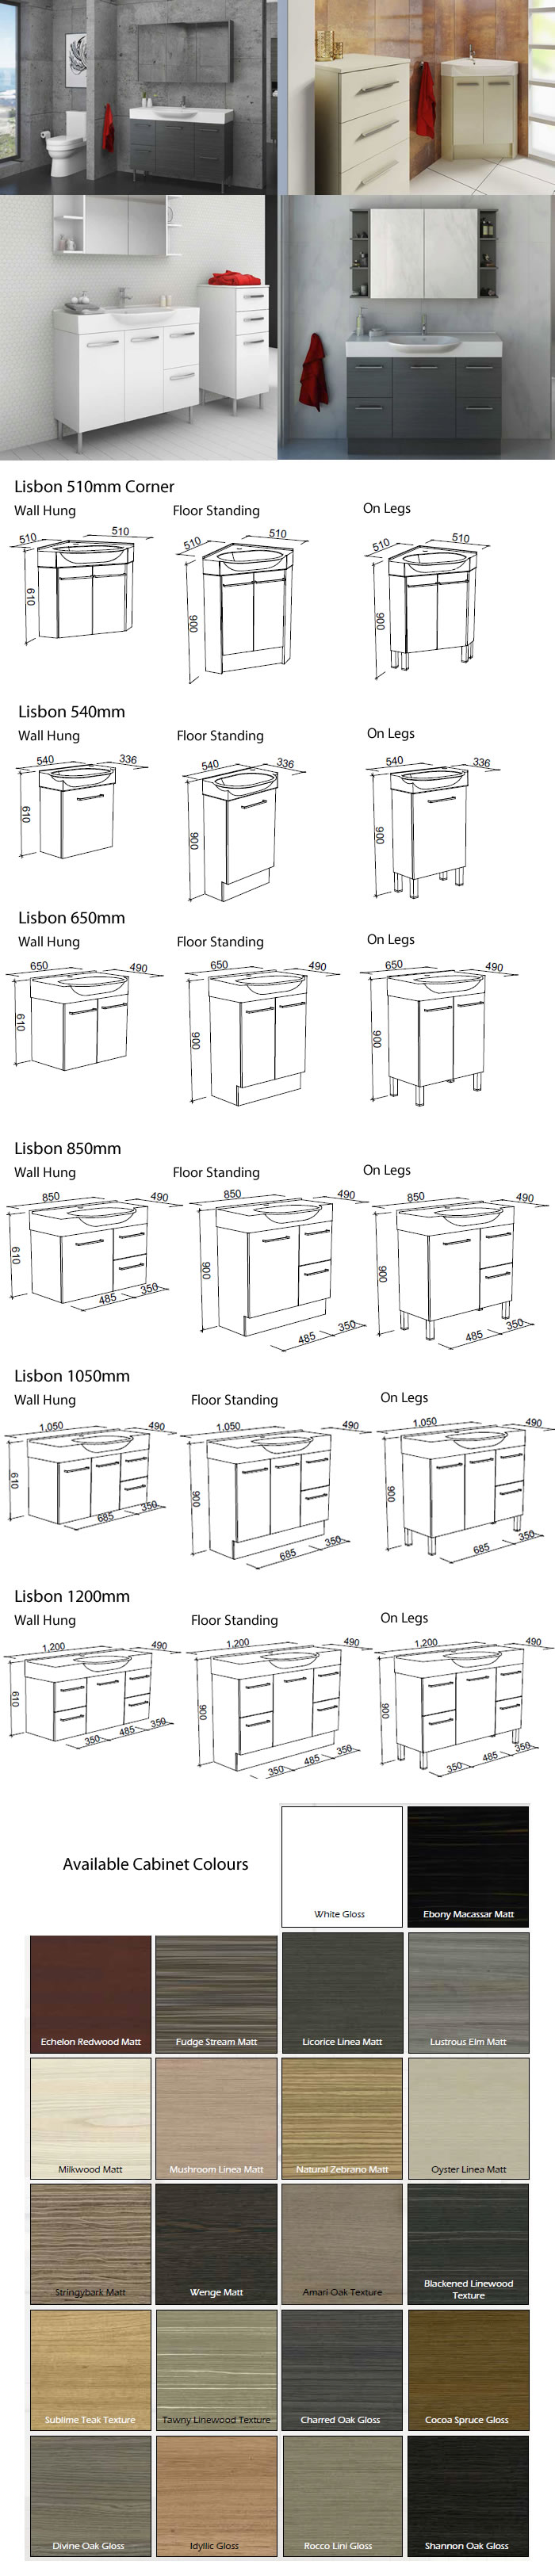 Timberline Lisbon Vanity Cabinet specifications